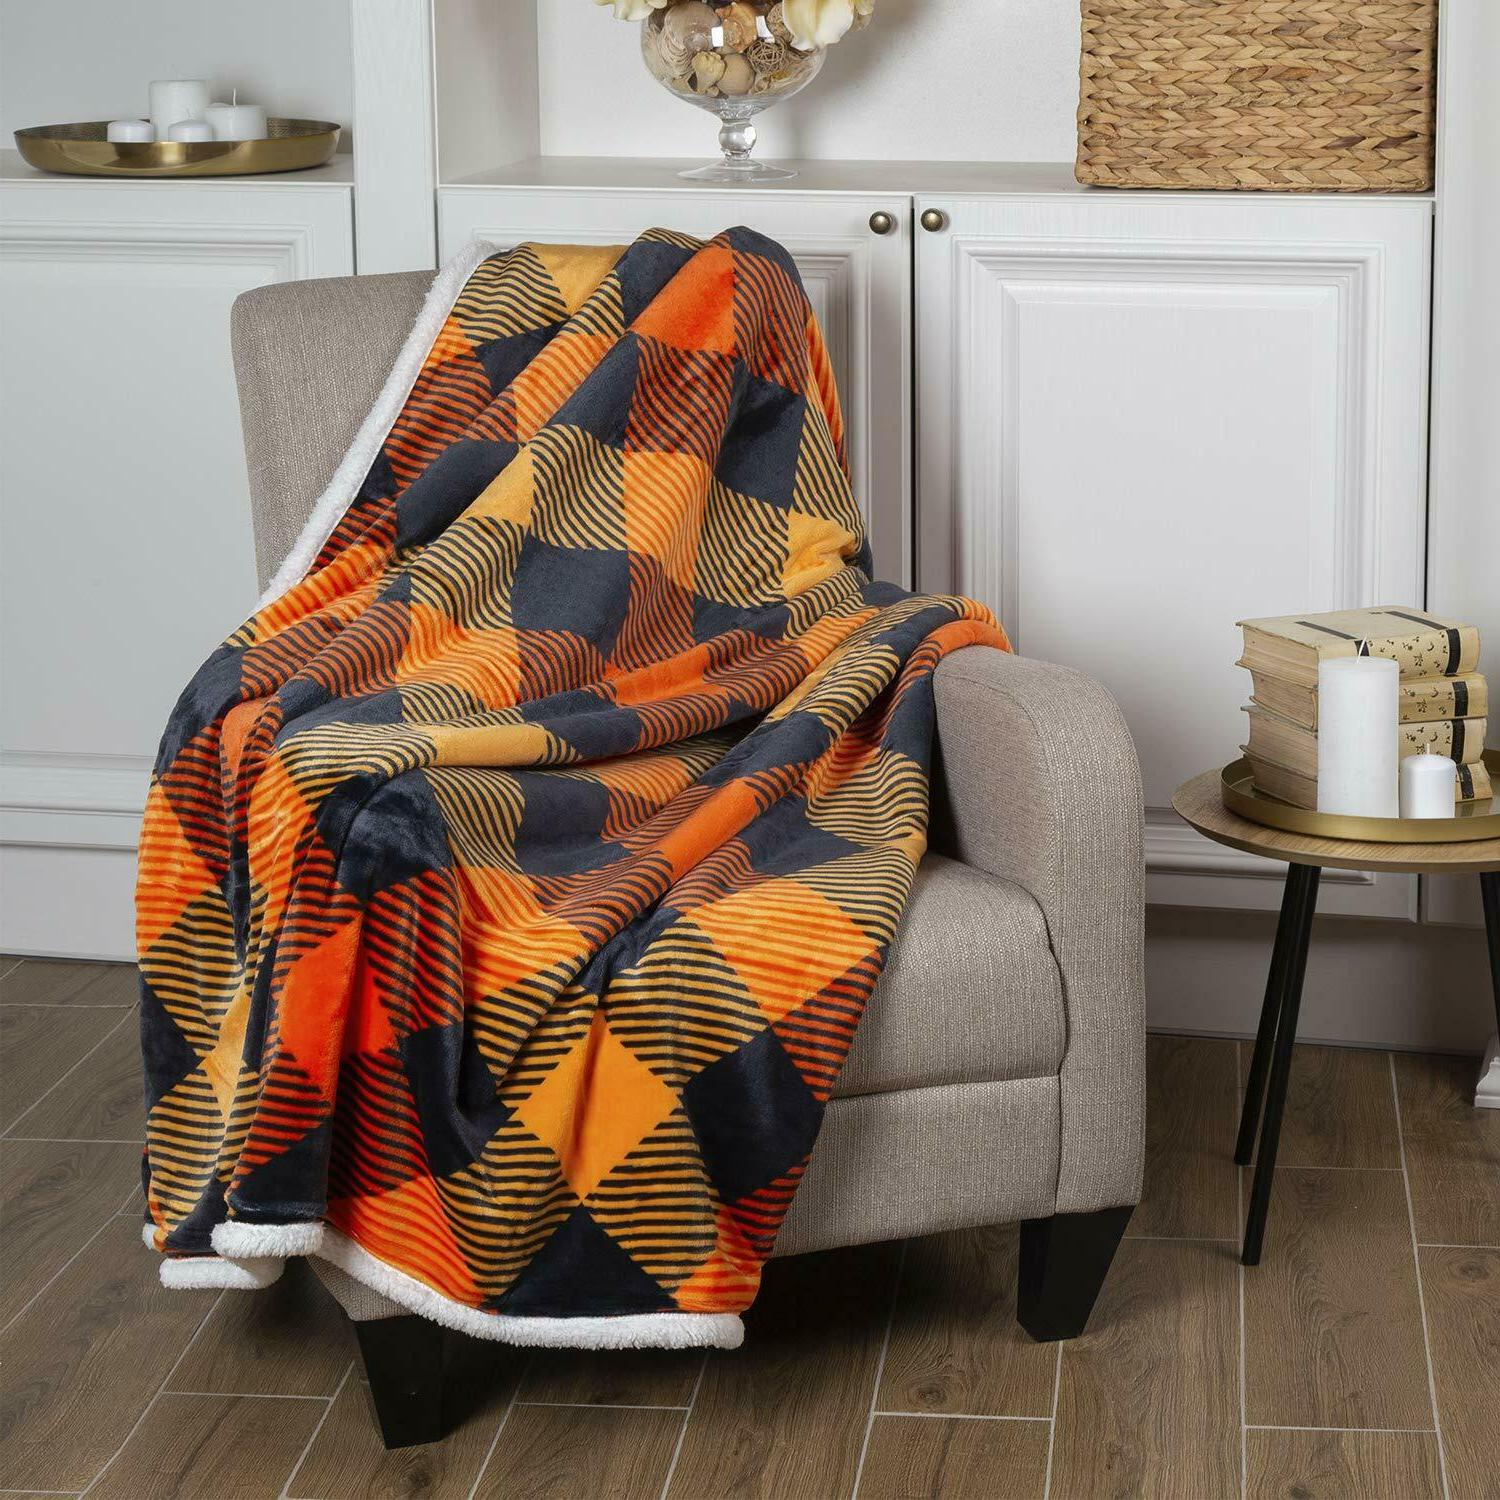 Soft Cozy Throw Blanket With Flannel